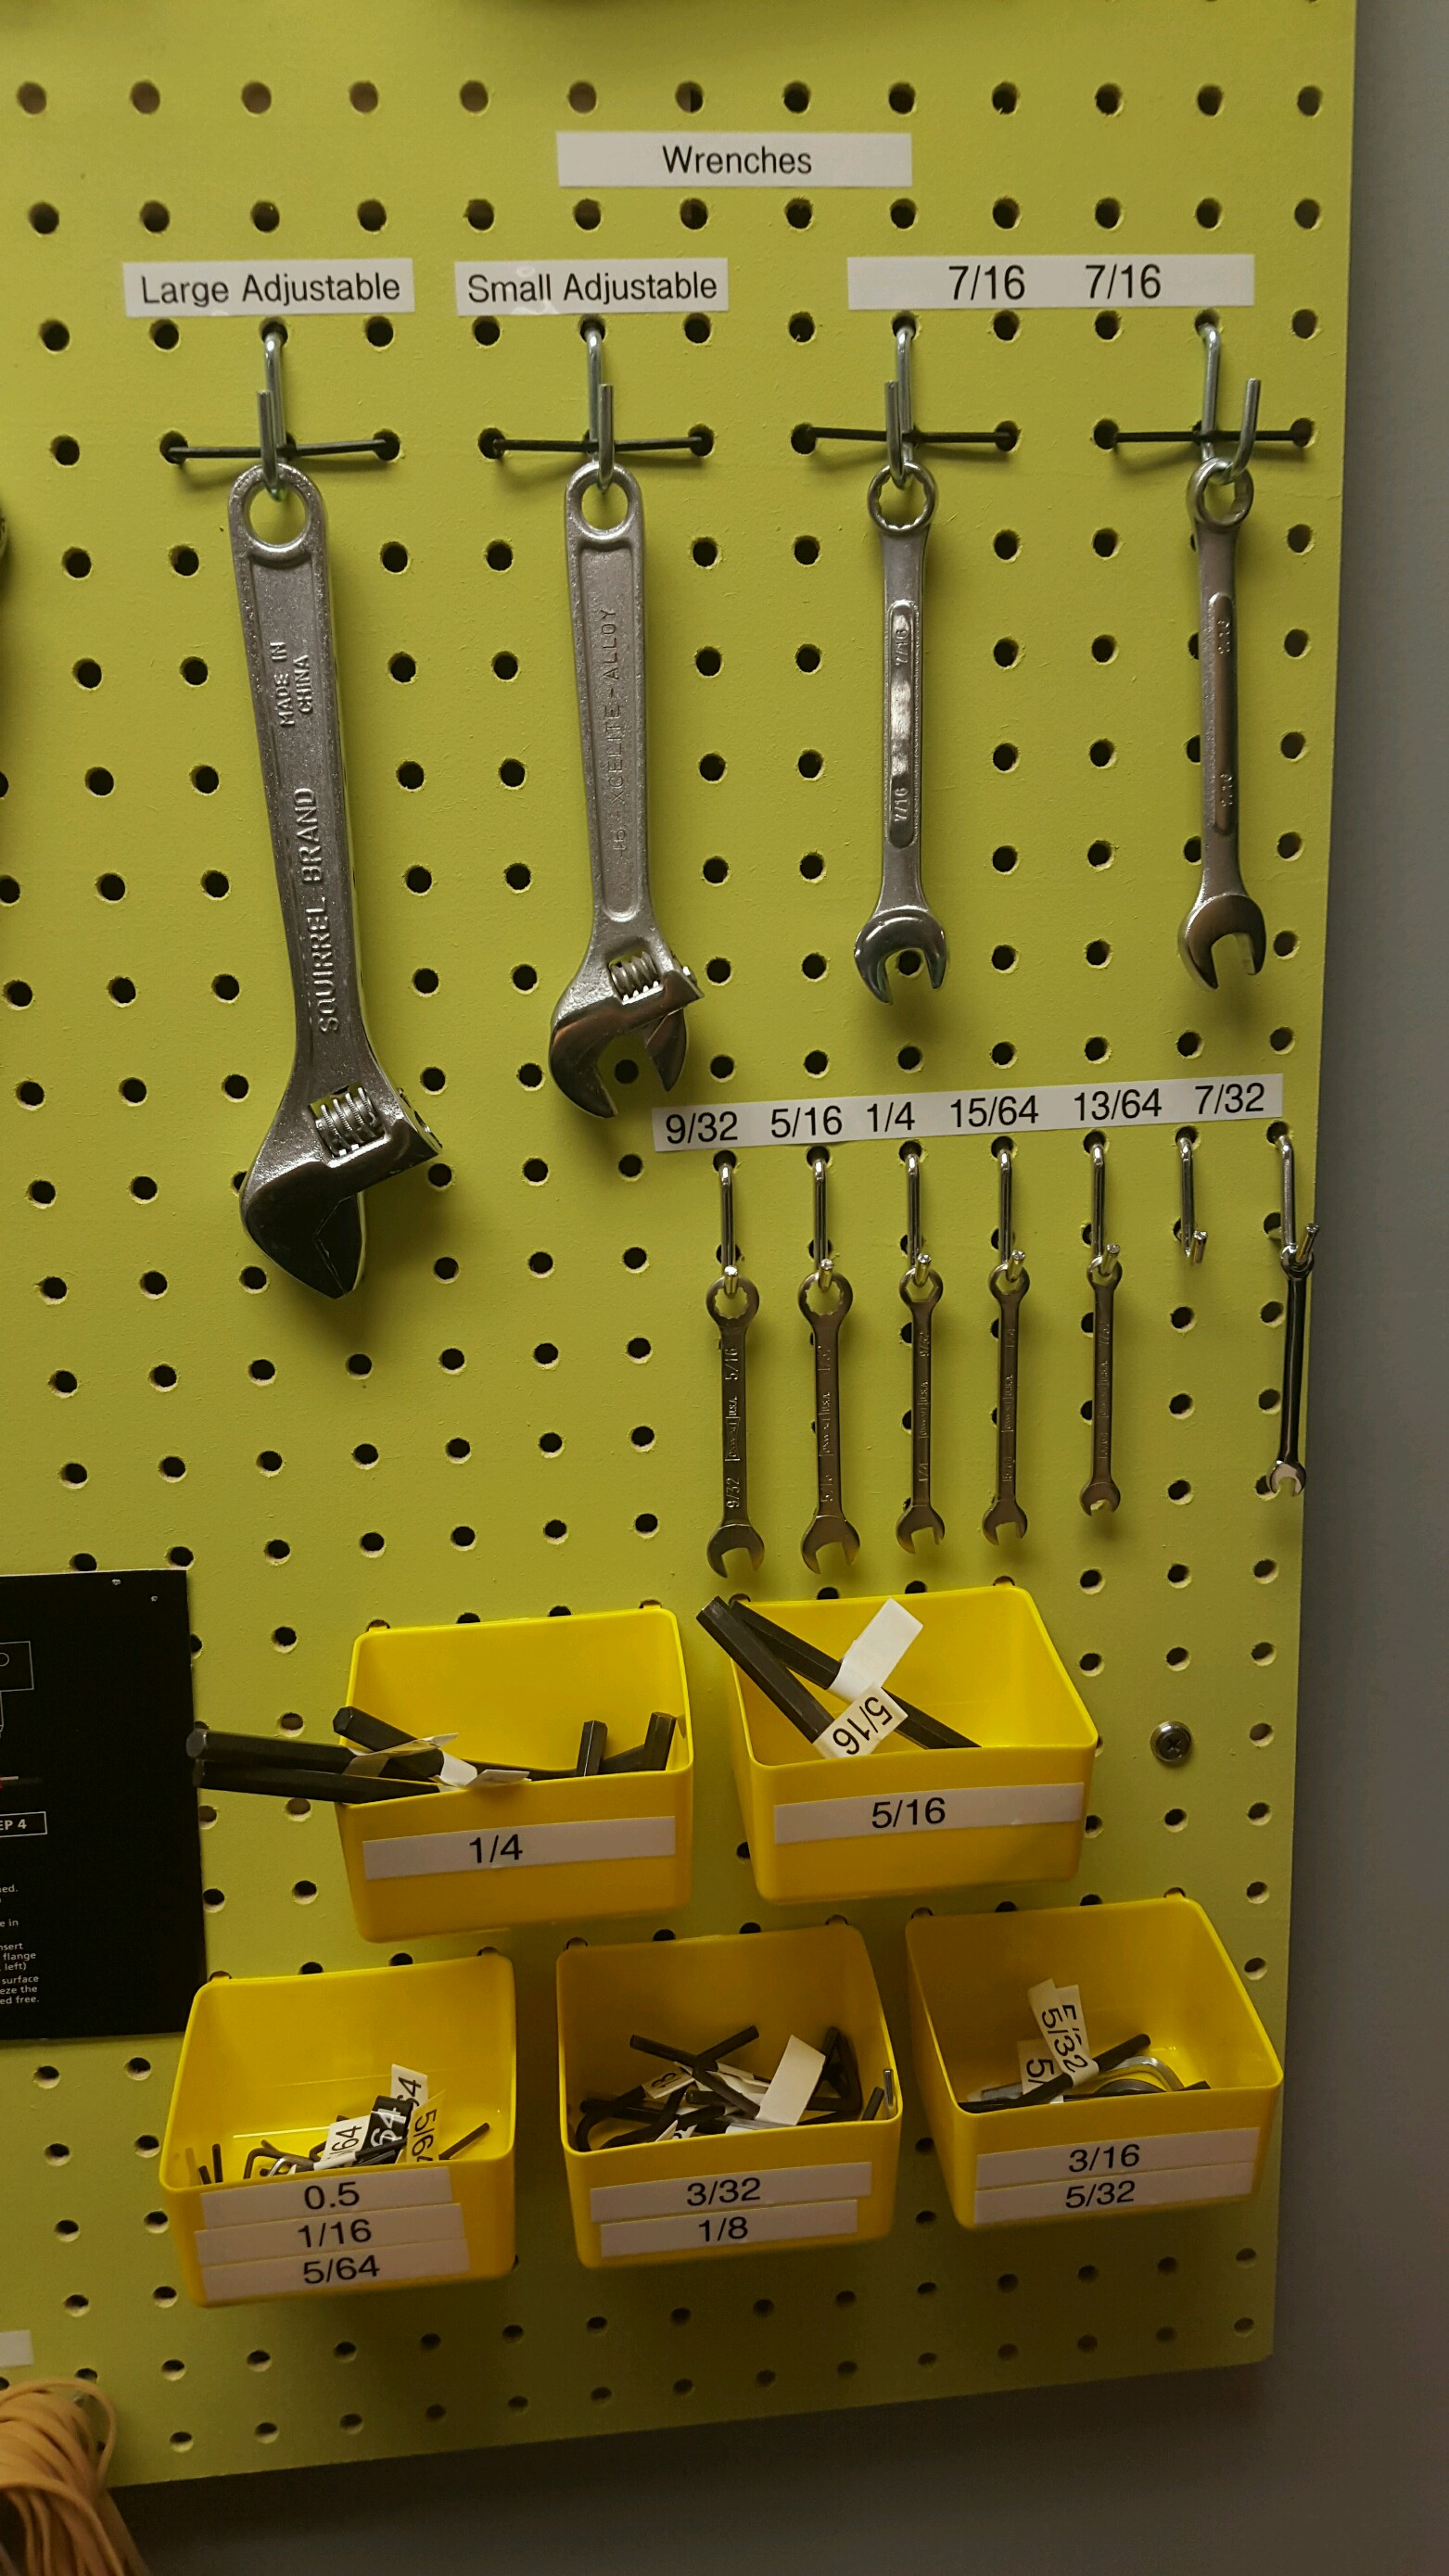 Wrenches varying in size, and Allen wrenches varying in size